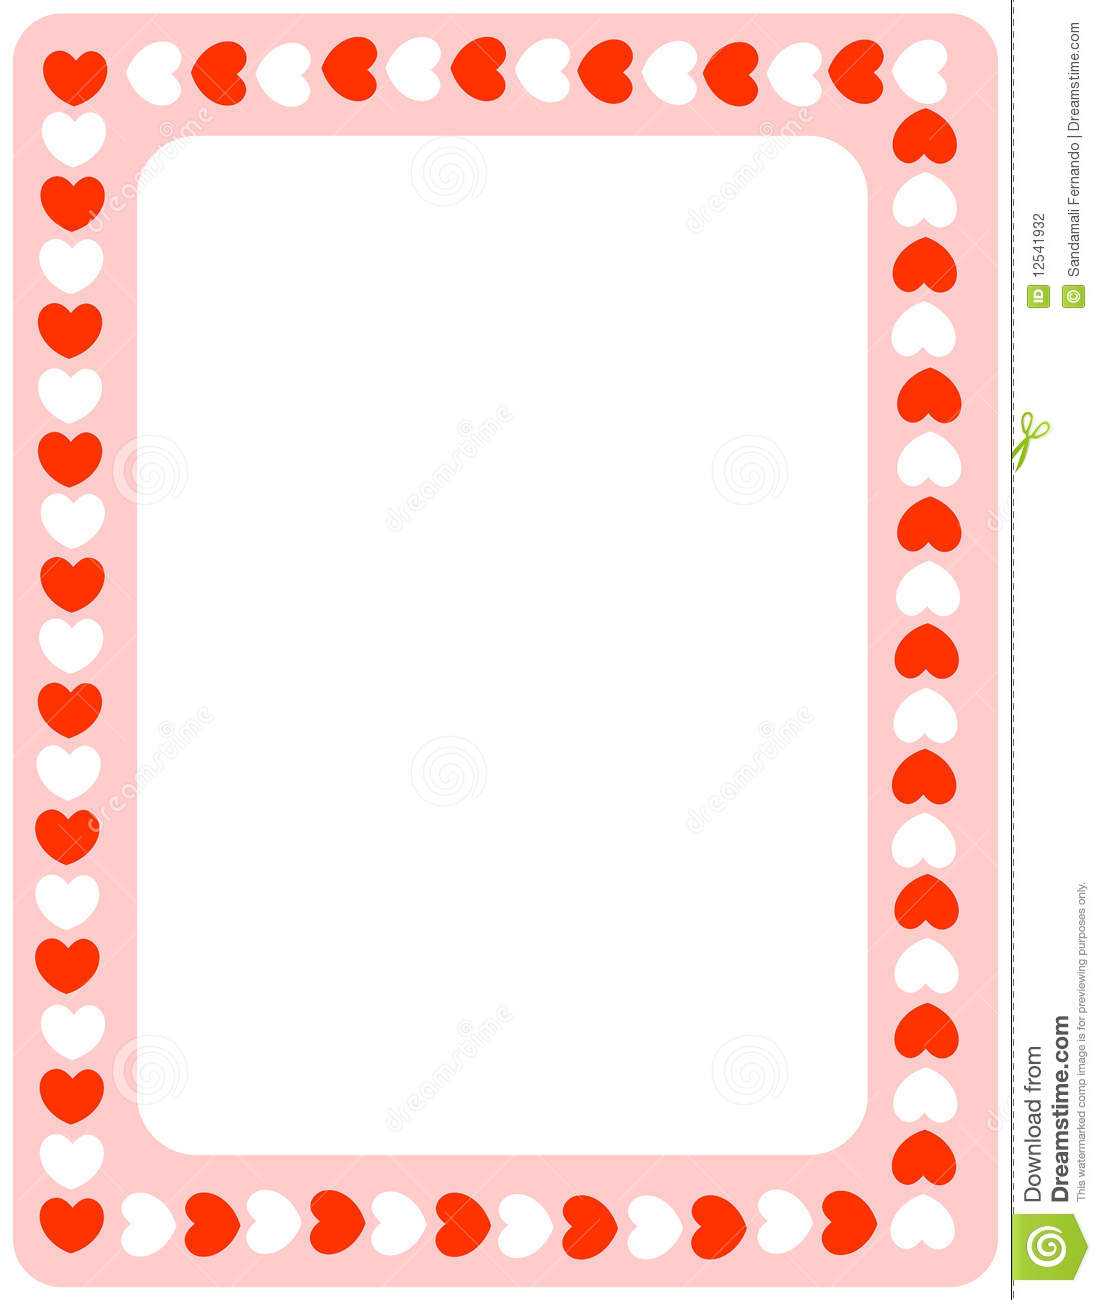 hight resolution of valentine heart border clipart red hearts valentines day